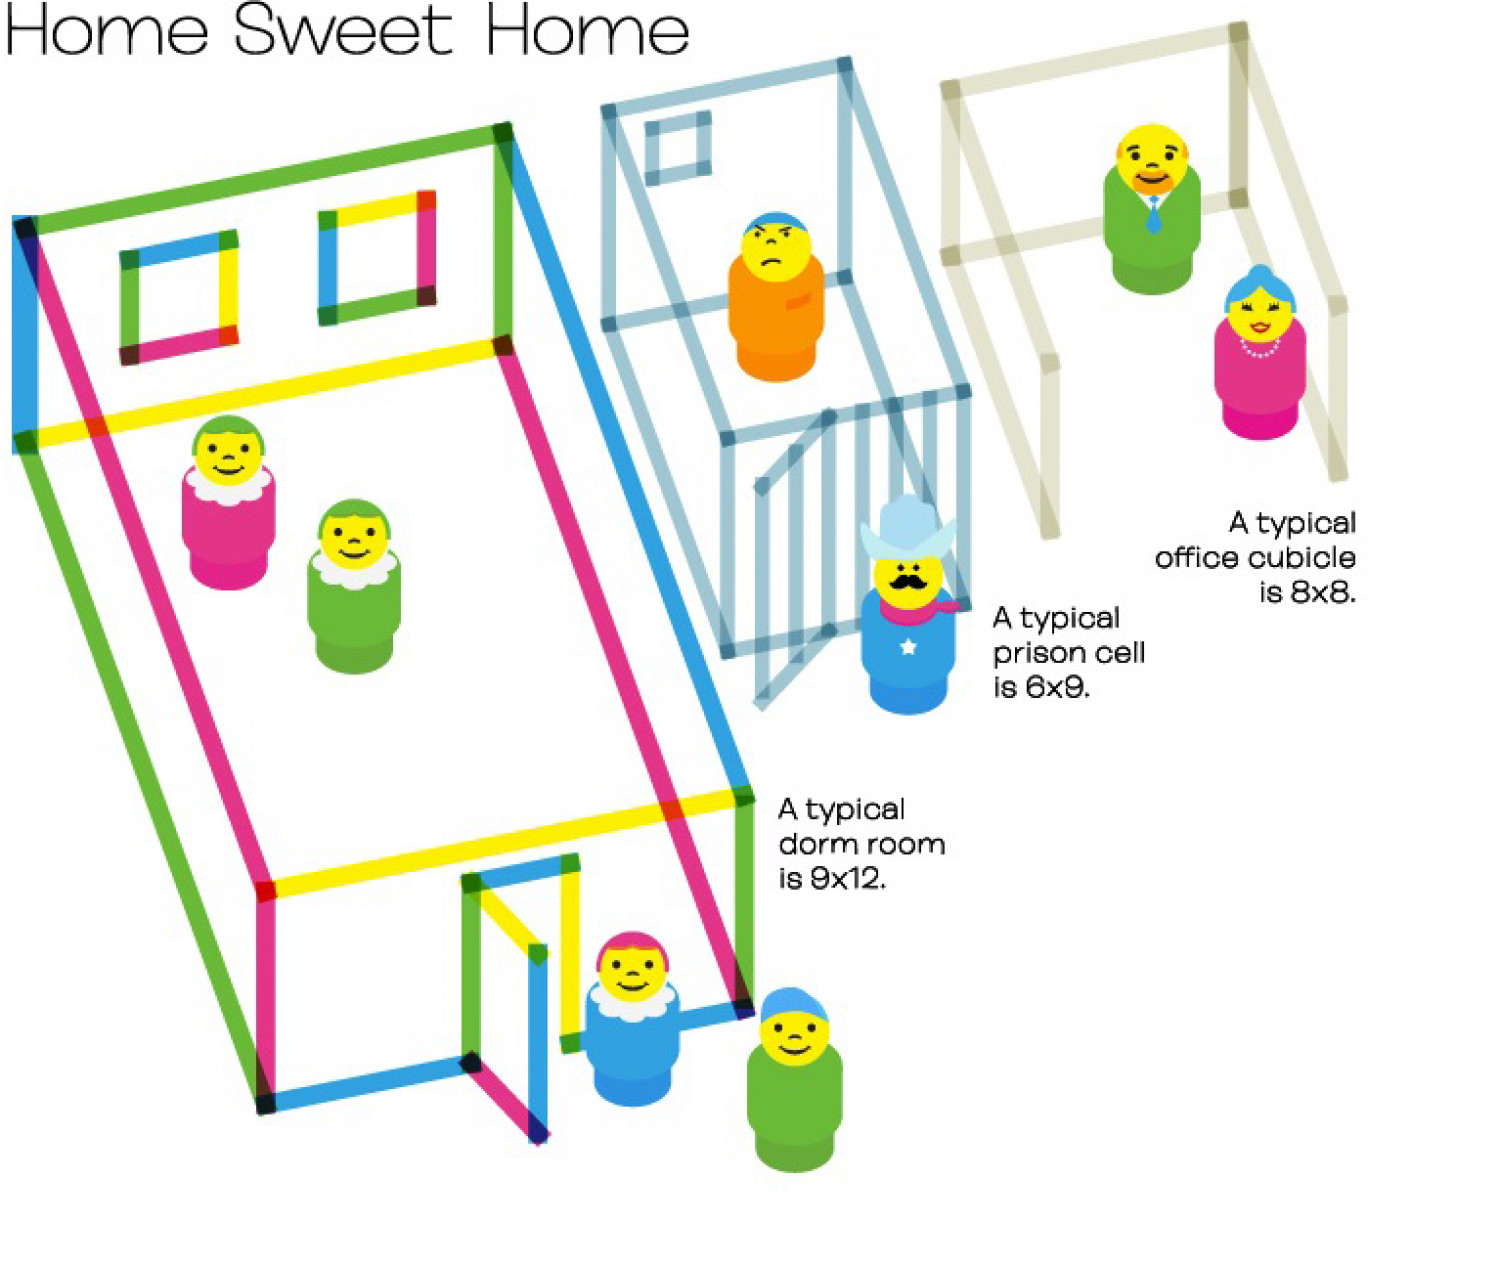 Home Sweet Home/Dorm Sweet Dorm Infographic